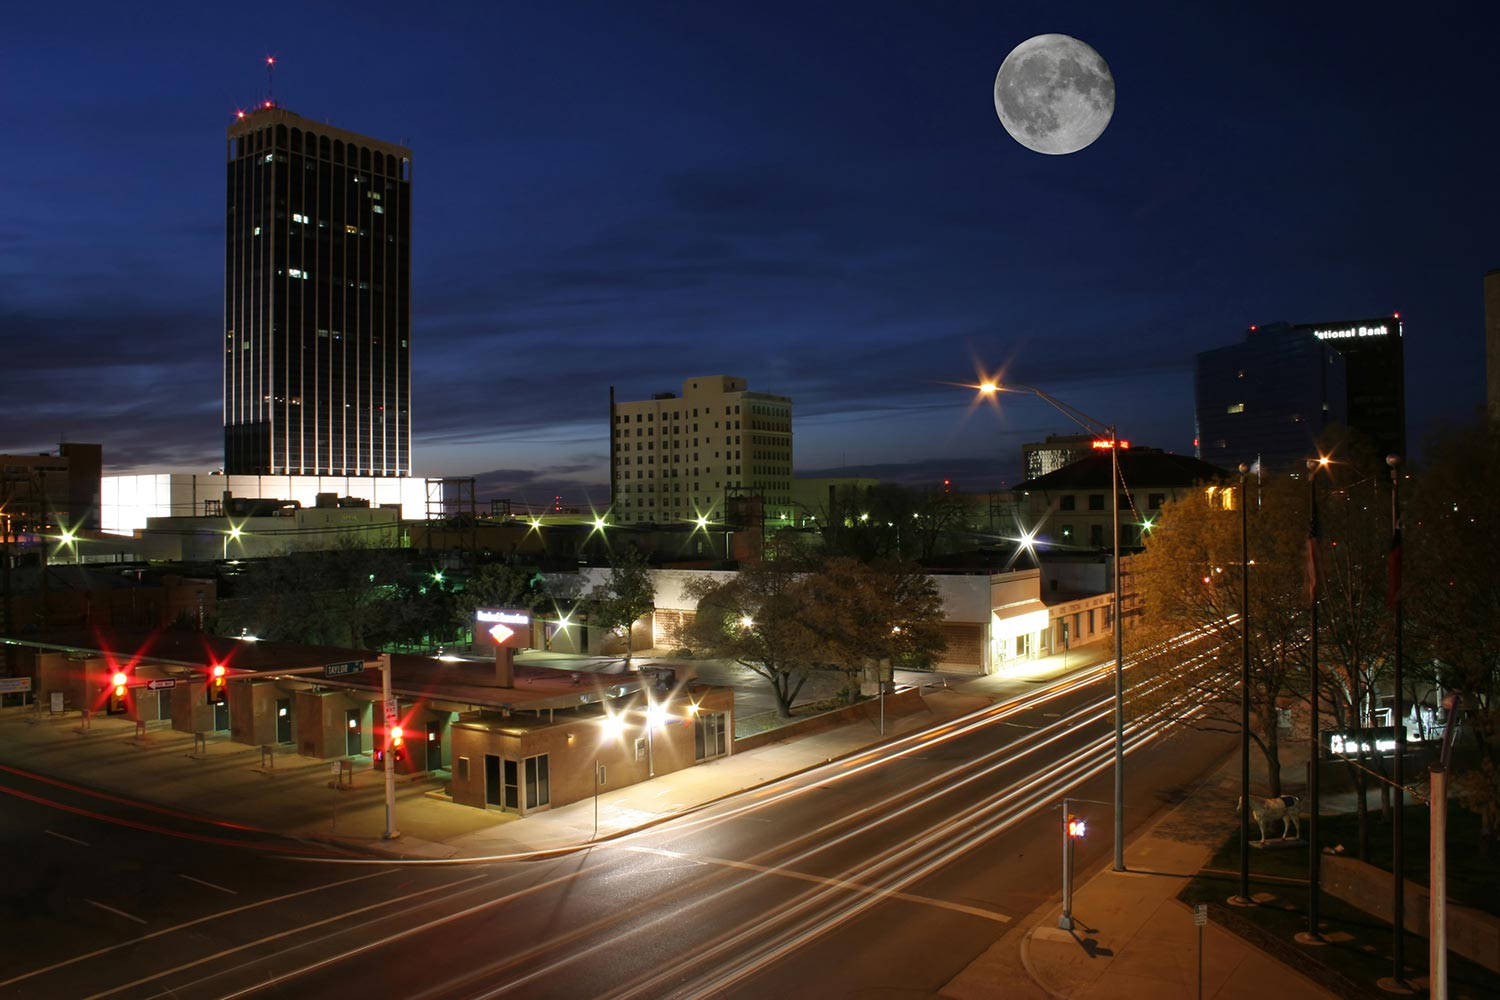 Businesses line illuminated city streets in Amarillo at night